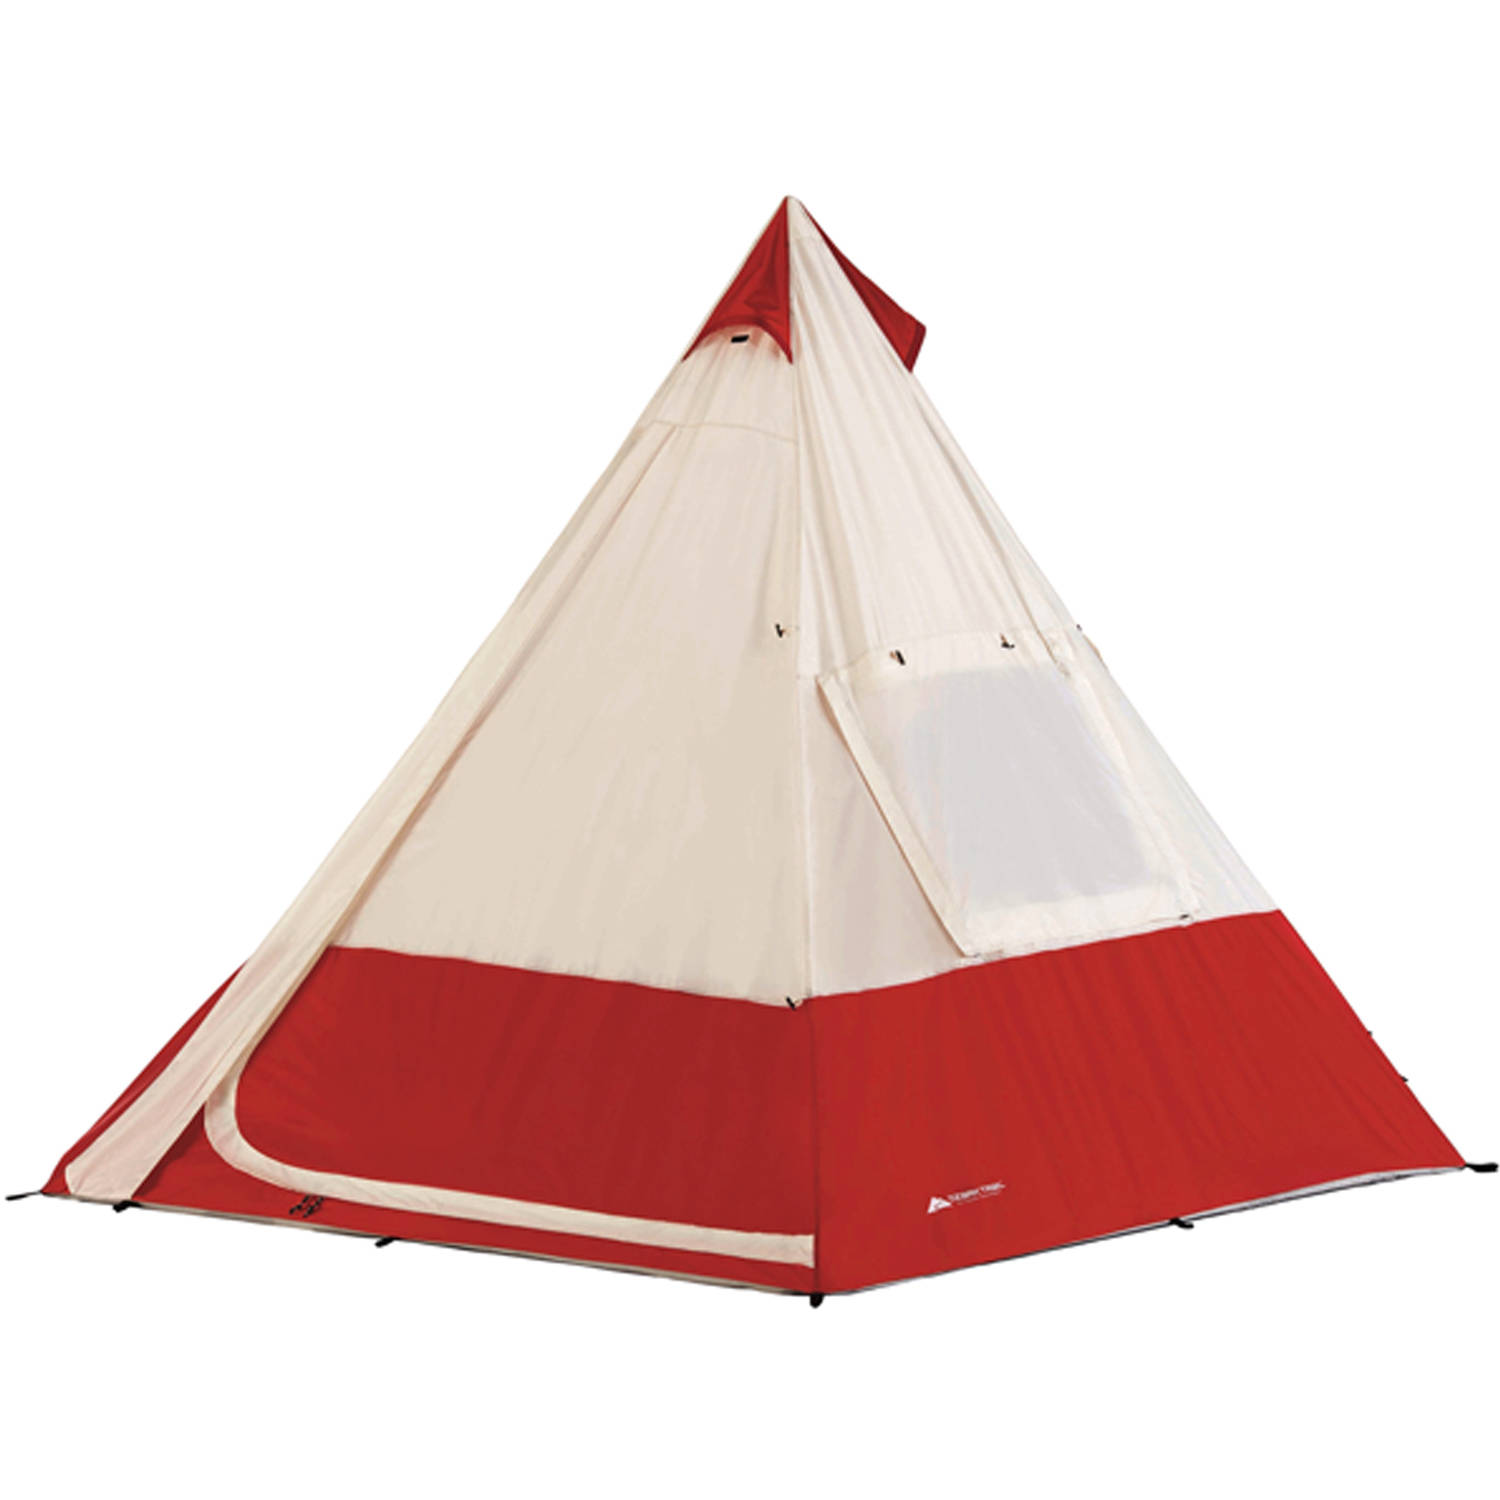 Ozark Trail 7 Person Teepee Tent Image 2 of 3  sc 1 st  Walmart : pop up teepee tent - memphite.com